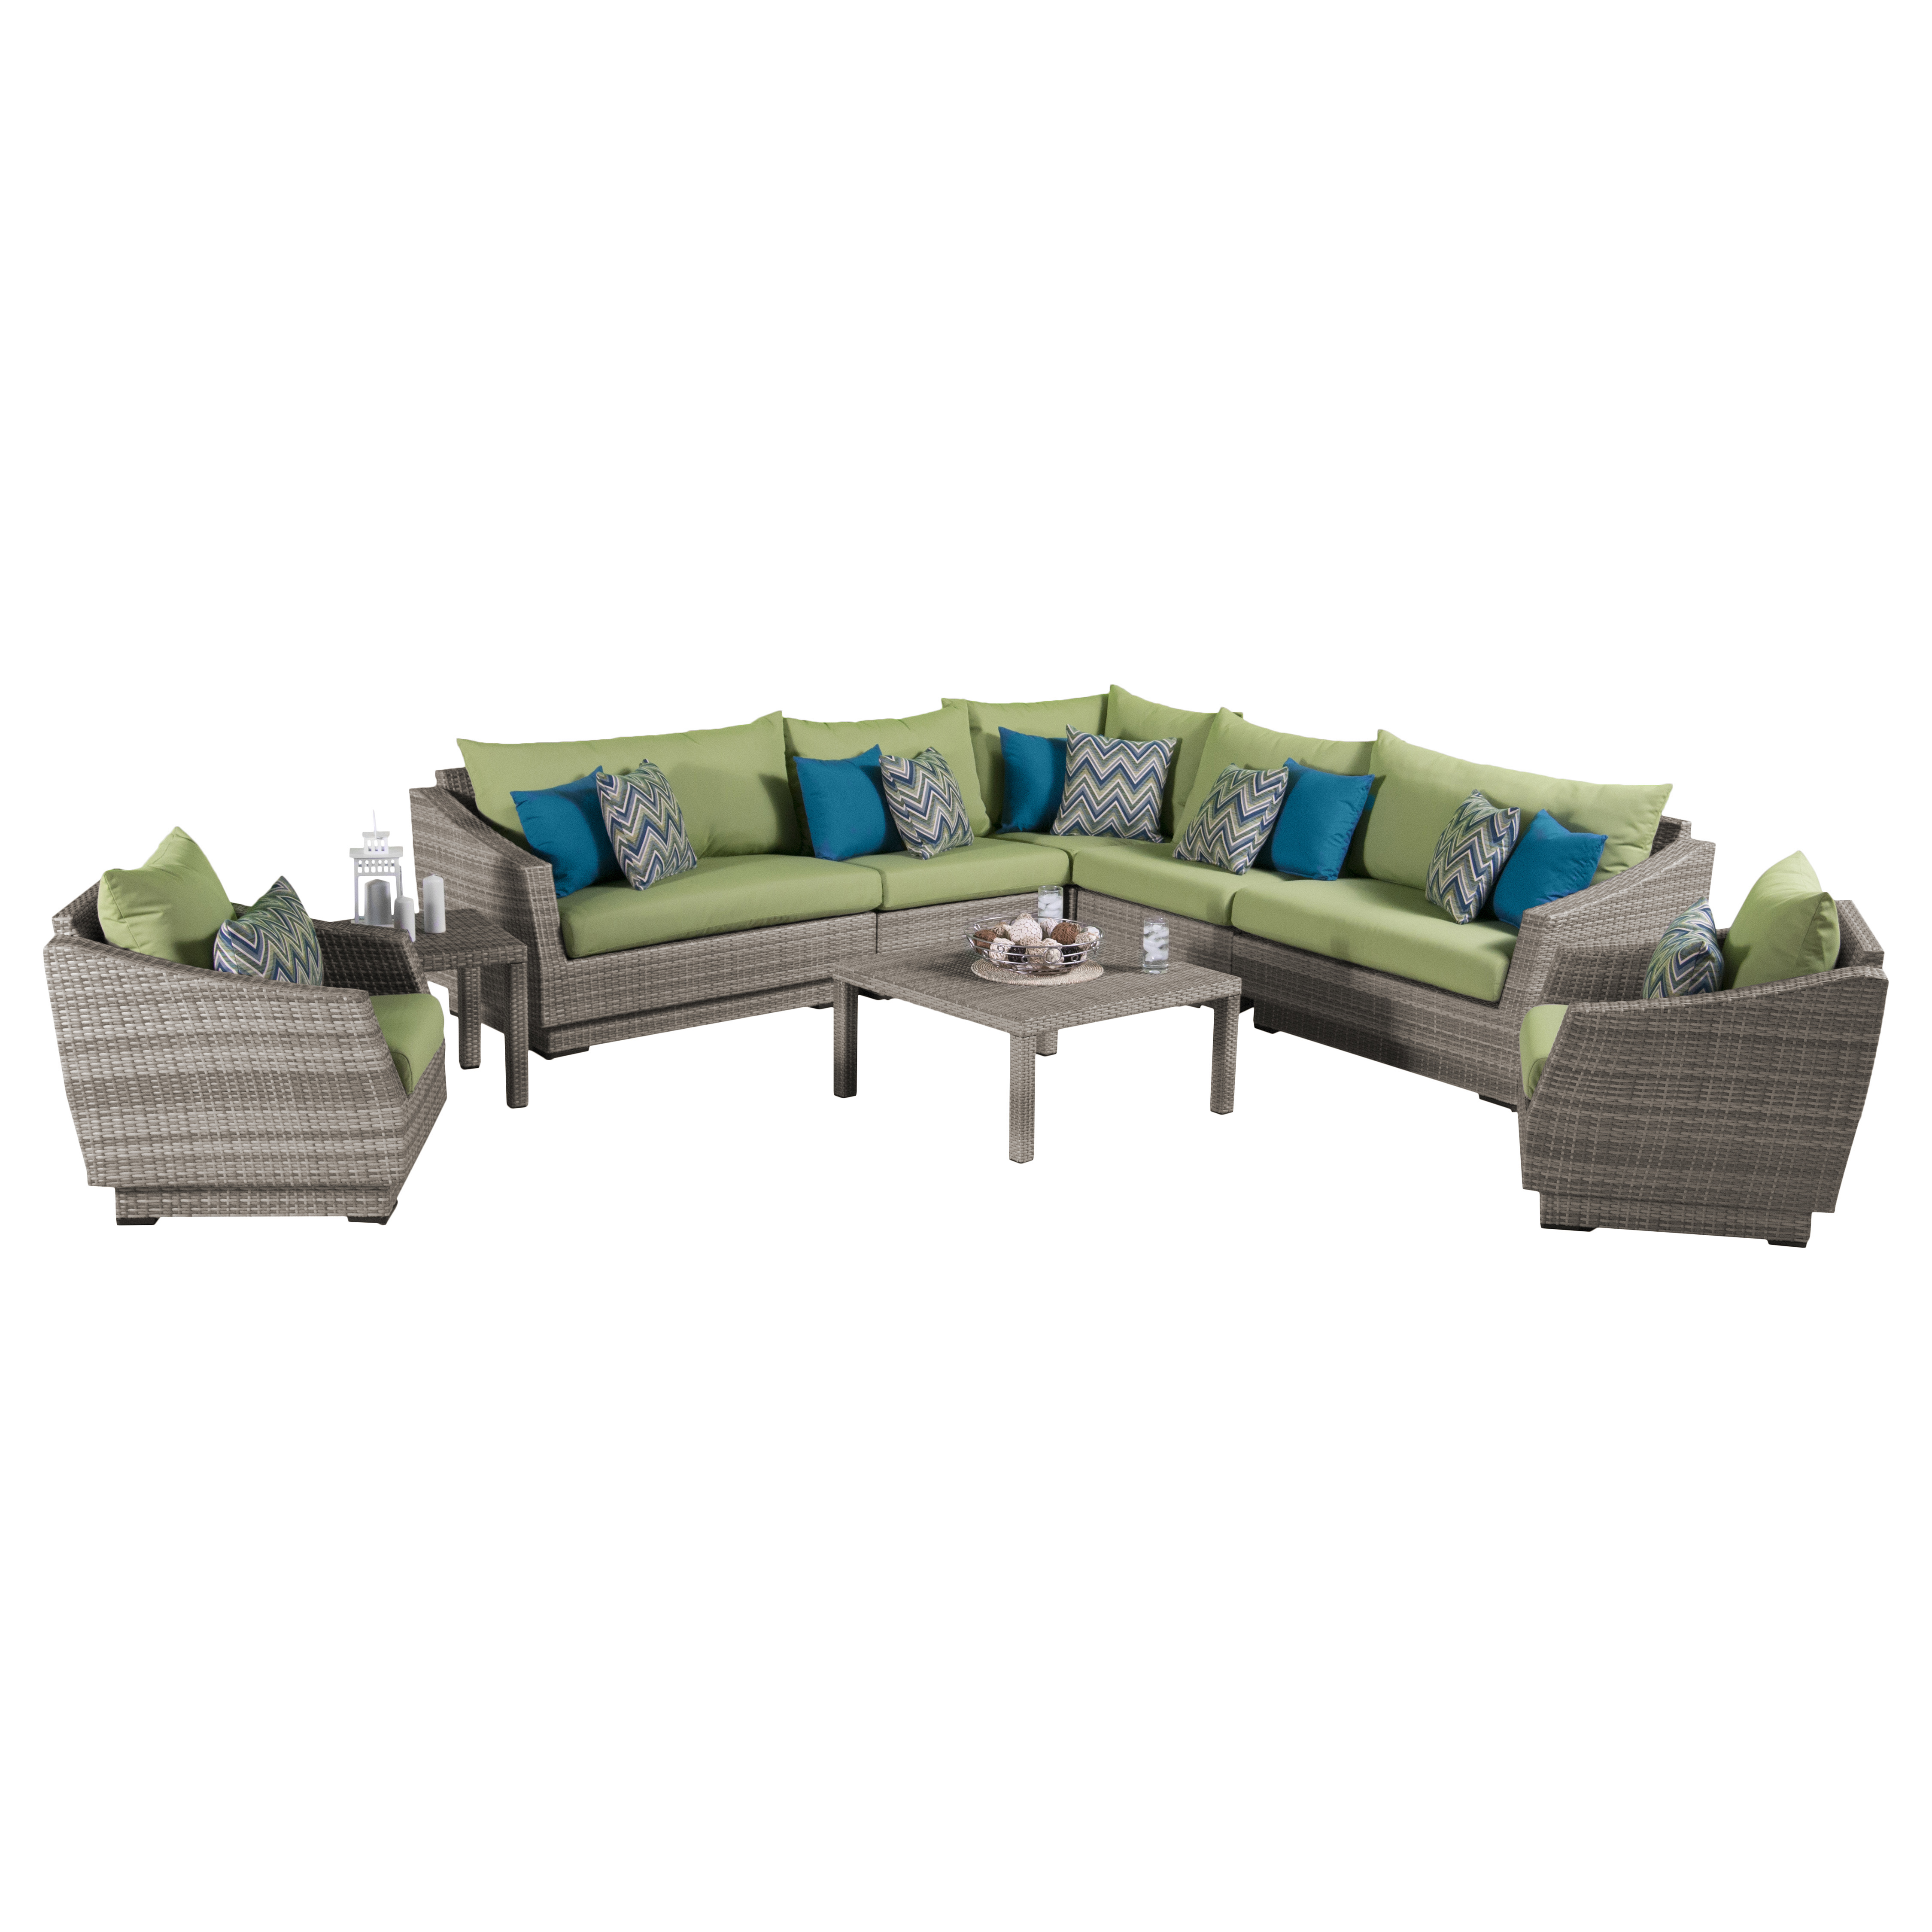 RST Brands Cannes™ 9pc Corner Sectional and Club Chair Seating Group with Ginkgo Green Cushions